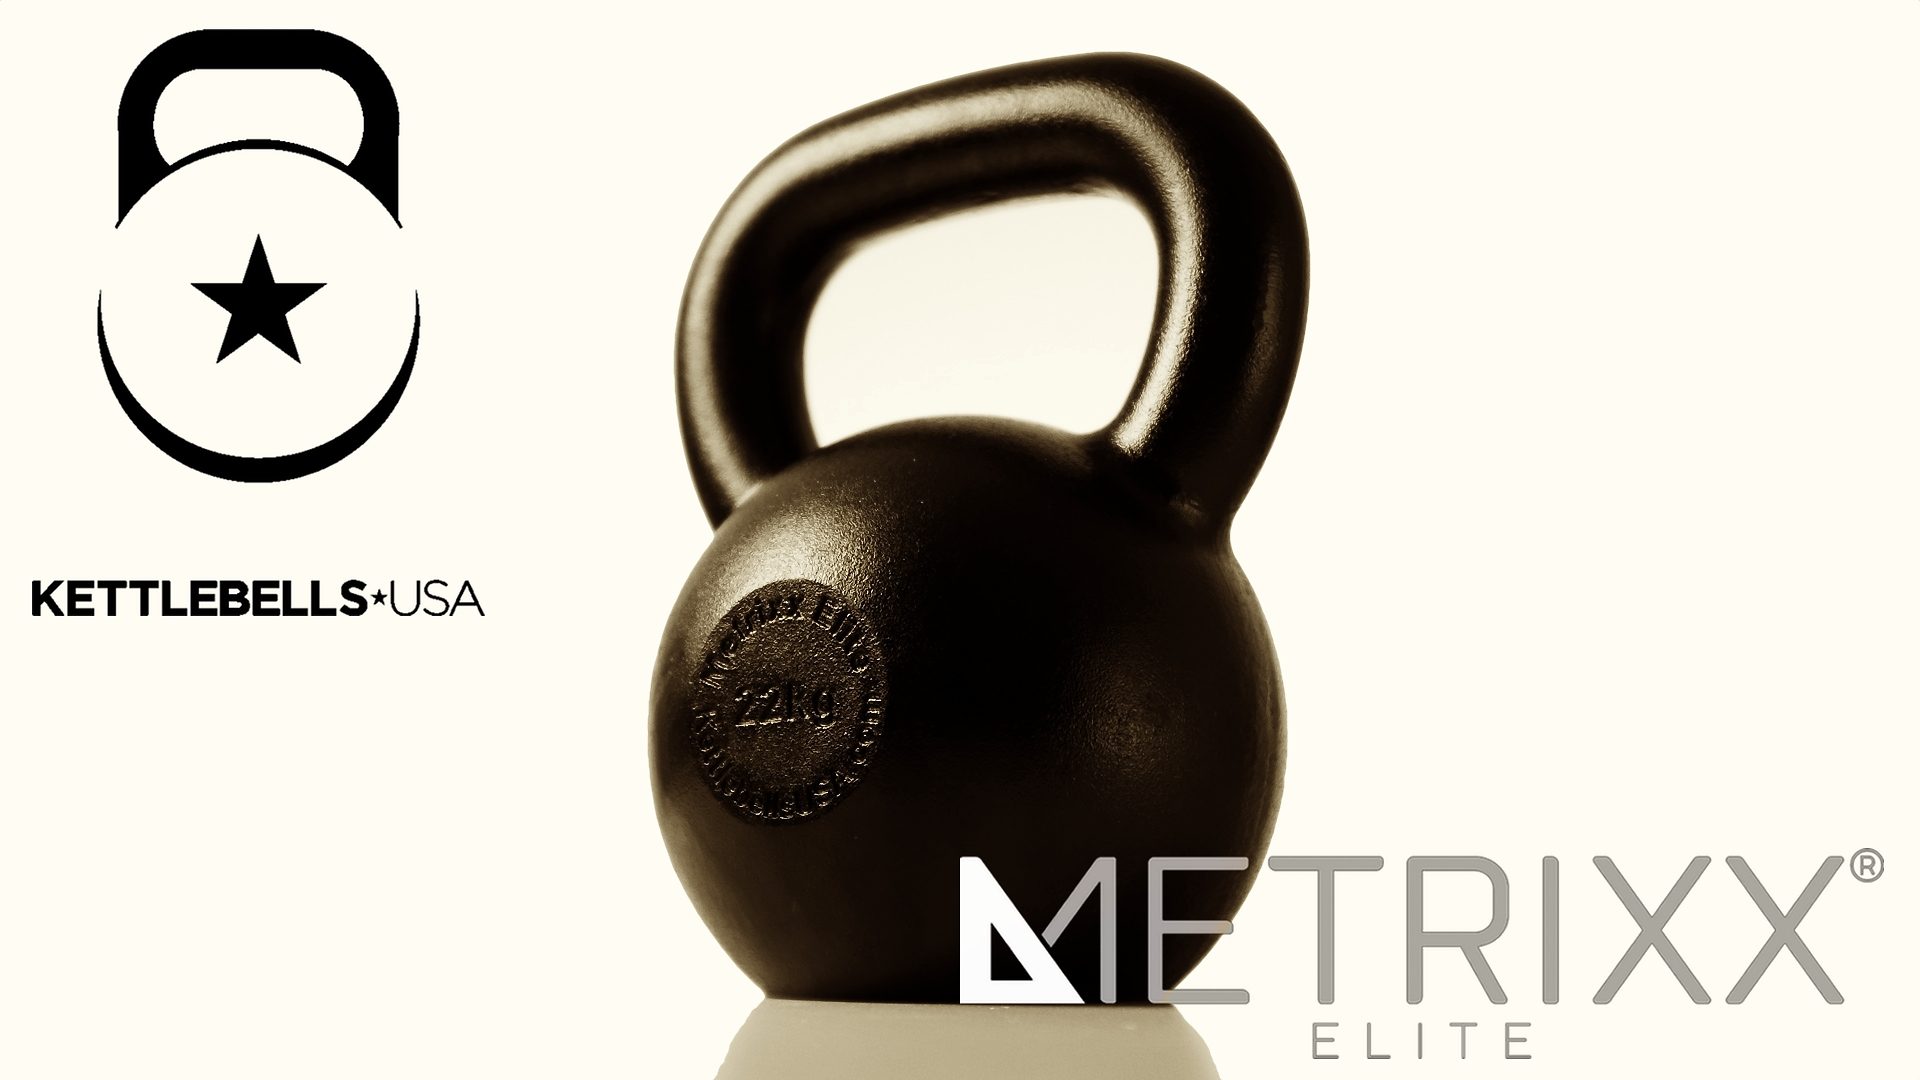 Metrixx® Elite Precision Military Grade E-Coat Kettlebells are The Gold Standard in Hardstyle Kettlebells - Free Shipping